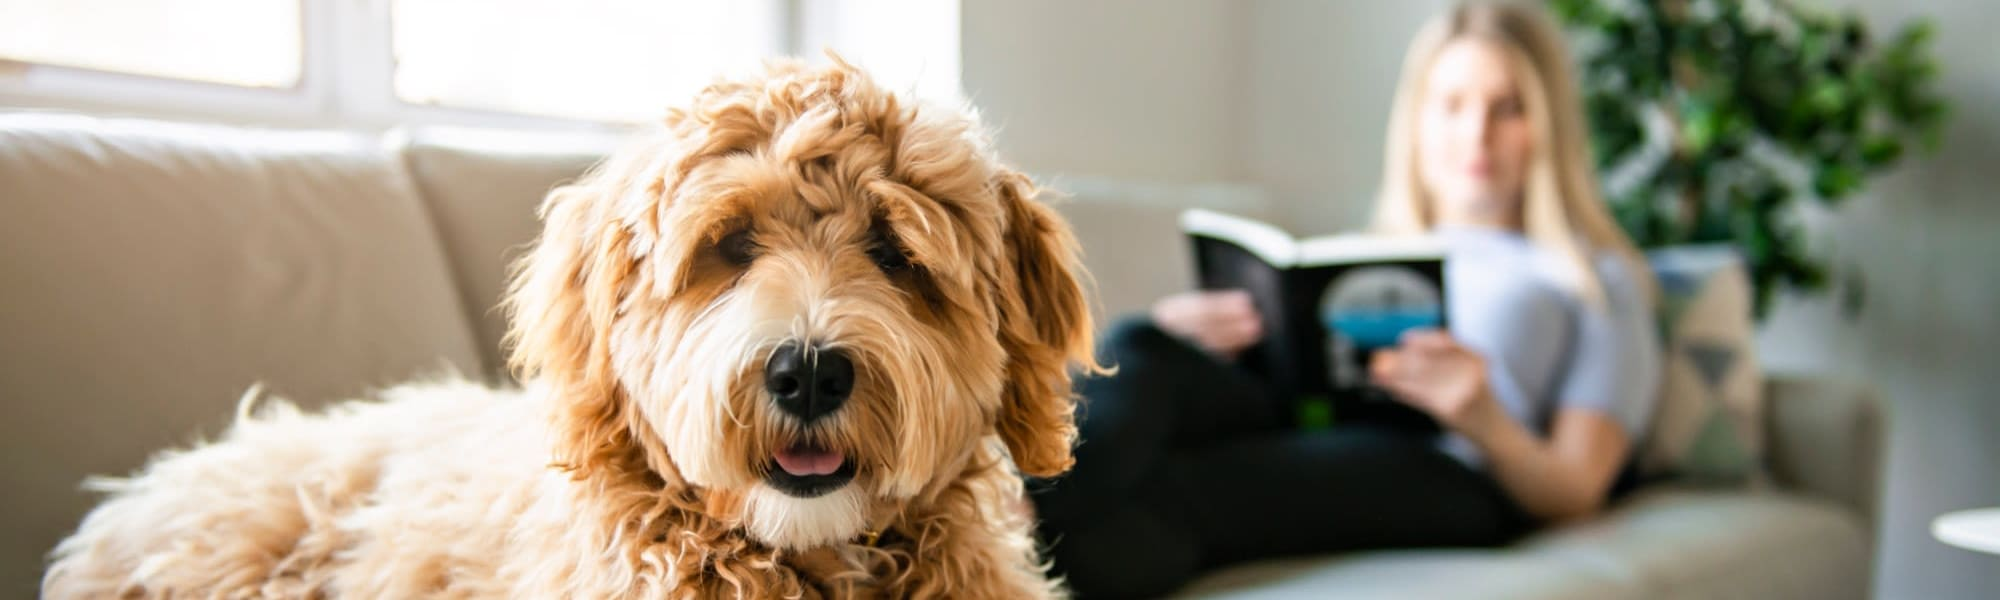 Pet-friendly apartments at Domain at Founders Parc in Euless, Texas